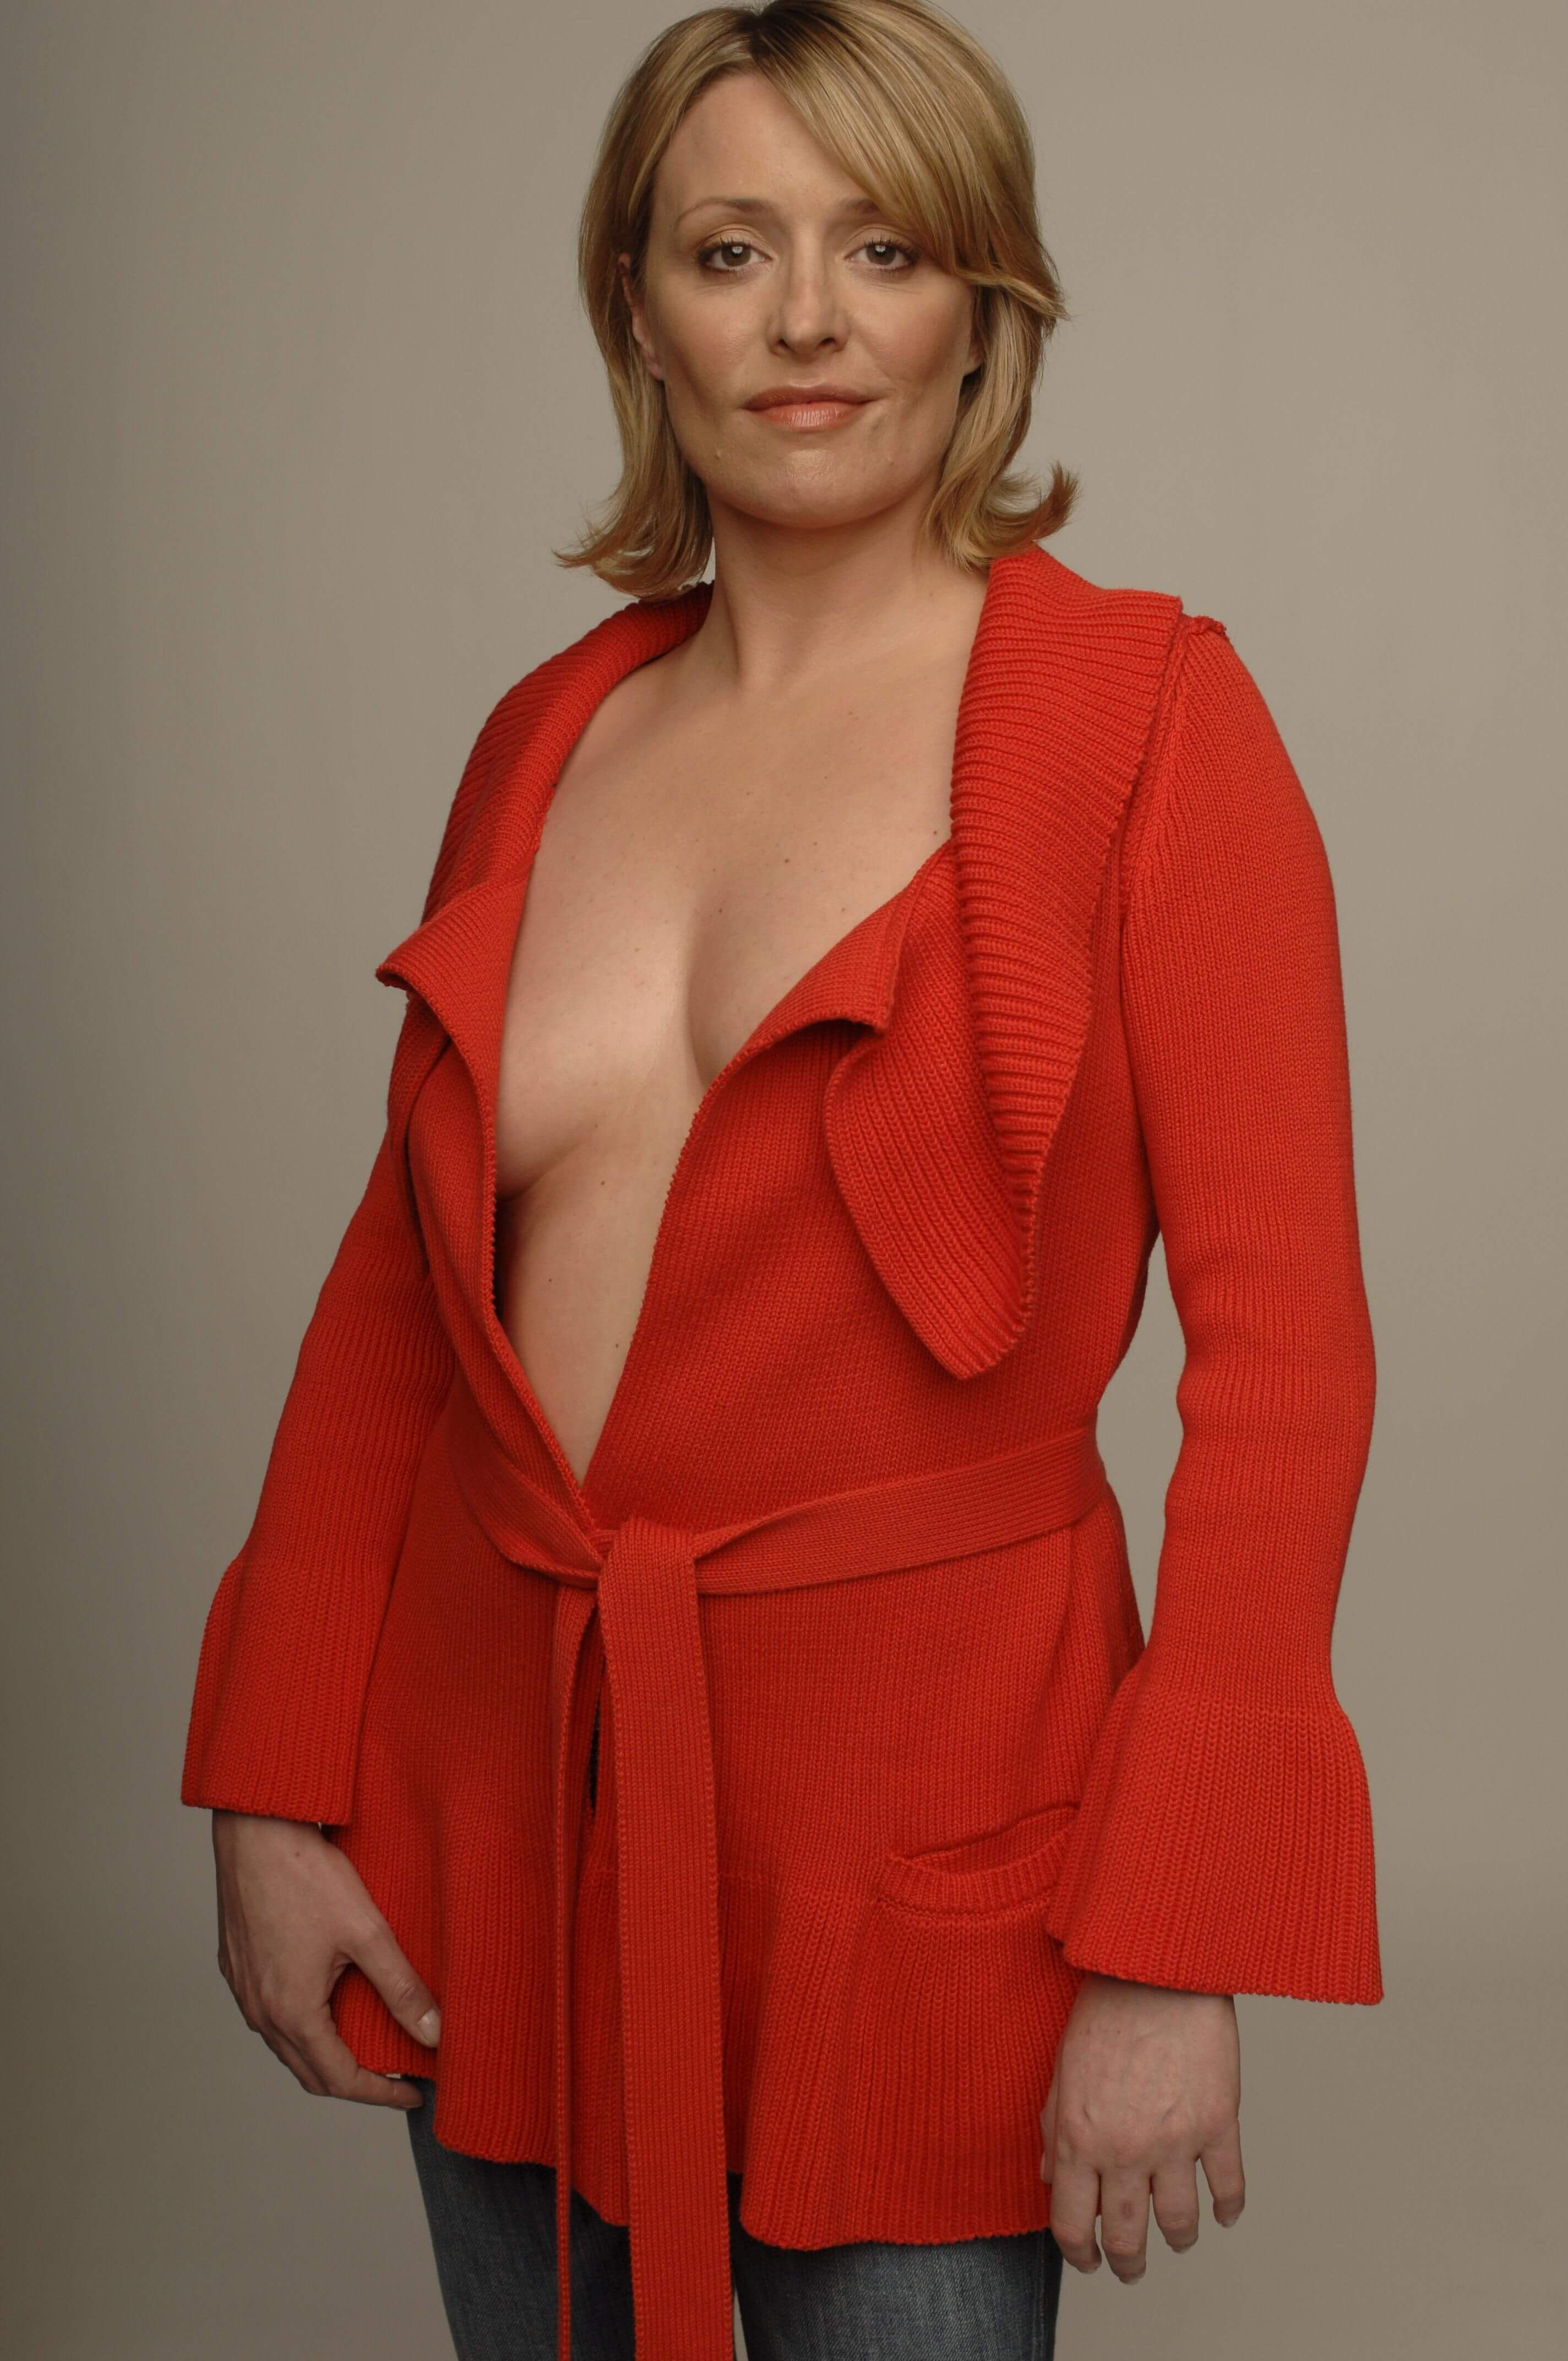 Laurie Brett sexy cleavage pics